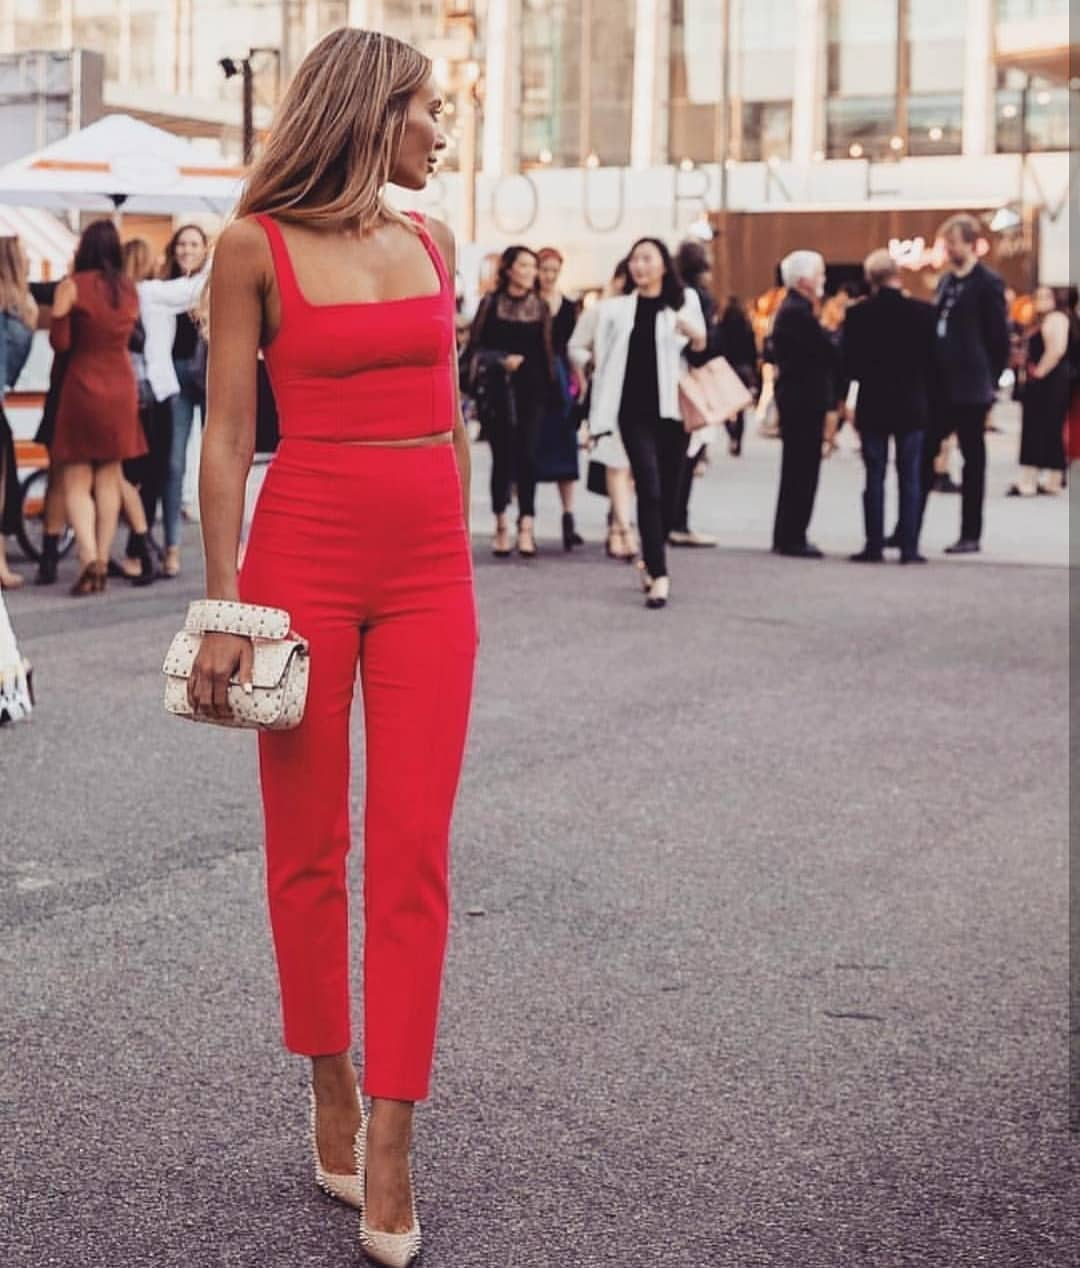 Two Piece Red Jumpsuit For Italian Summer Street Walks 2020